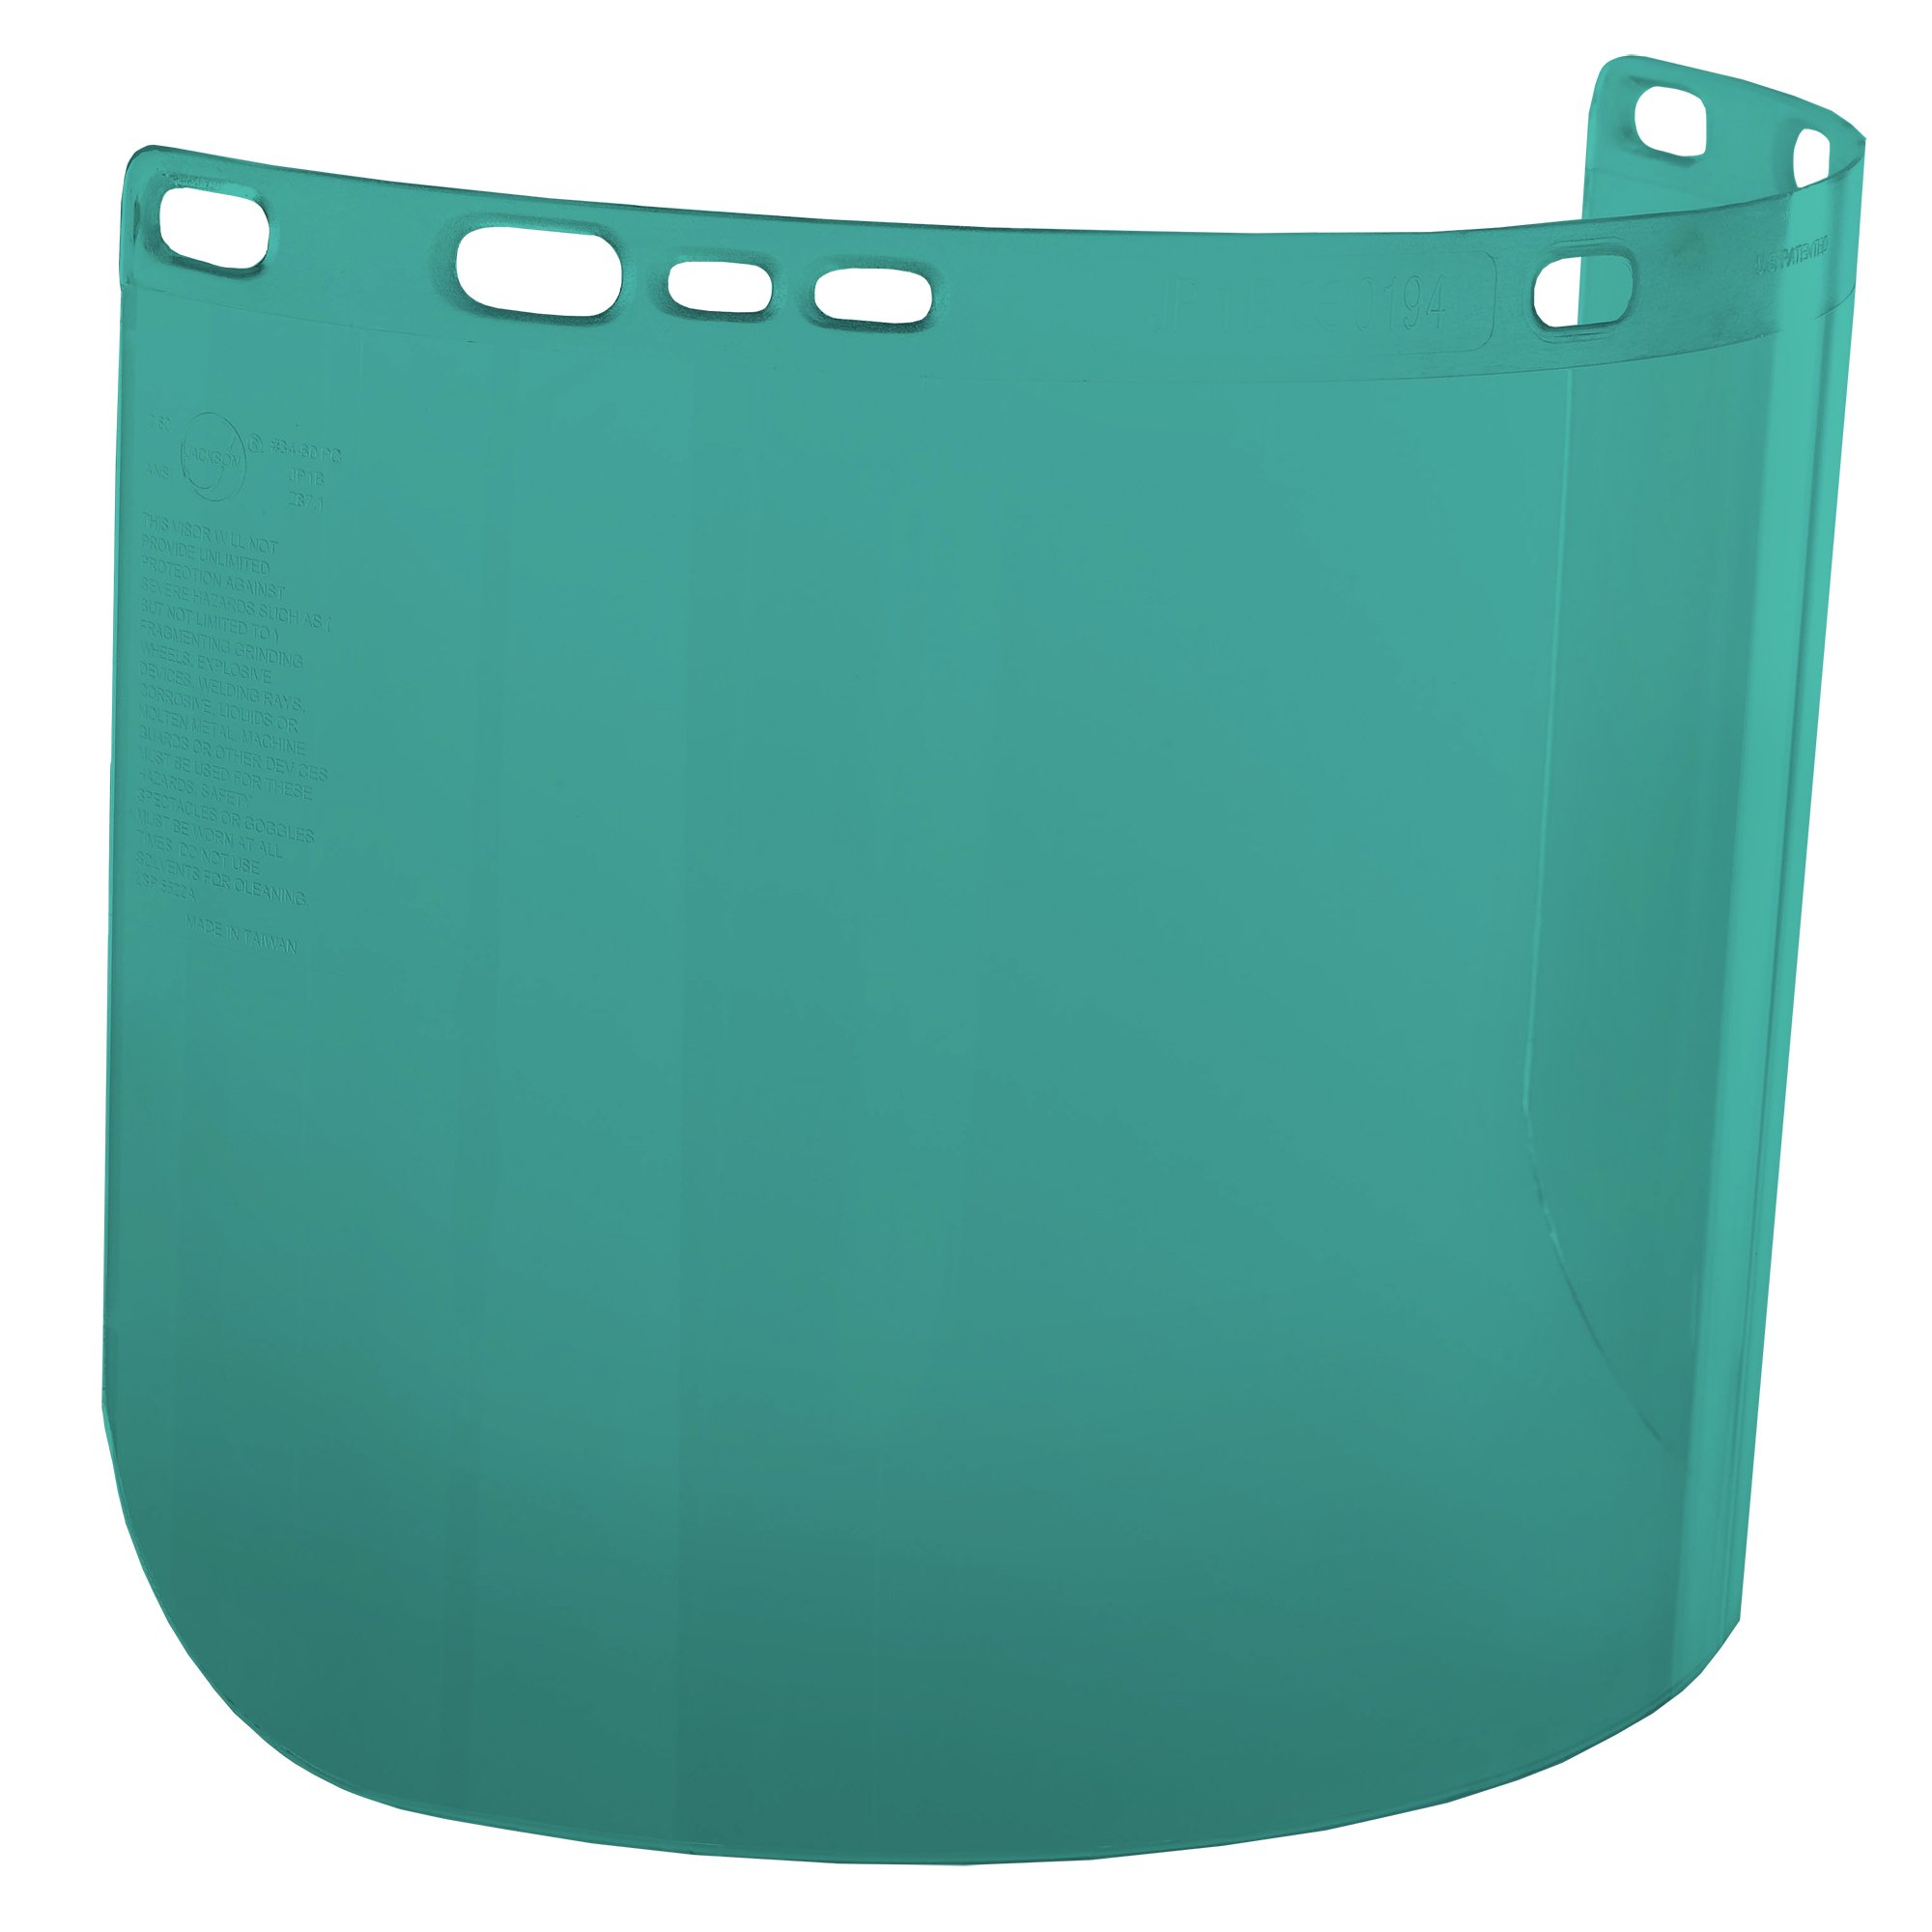 "Jackson Safety F20 High Impact Face Shield (29100), Polycarbonate, 8"" x 15.5"" x 0.04"", Dark Green, Face Protection, Unbound, 36 Shields / Case"